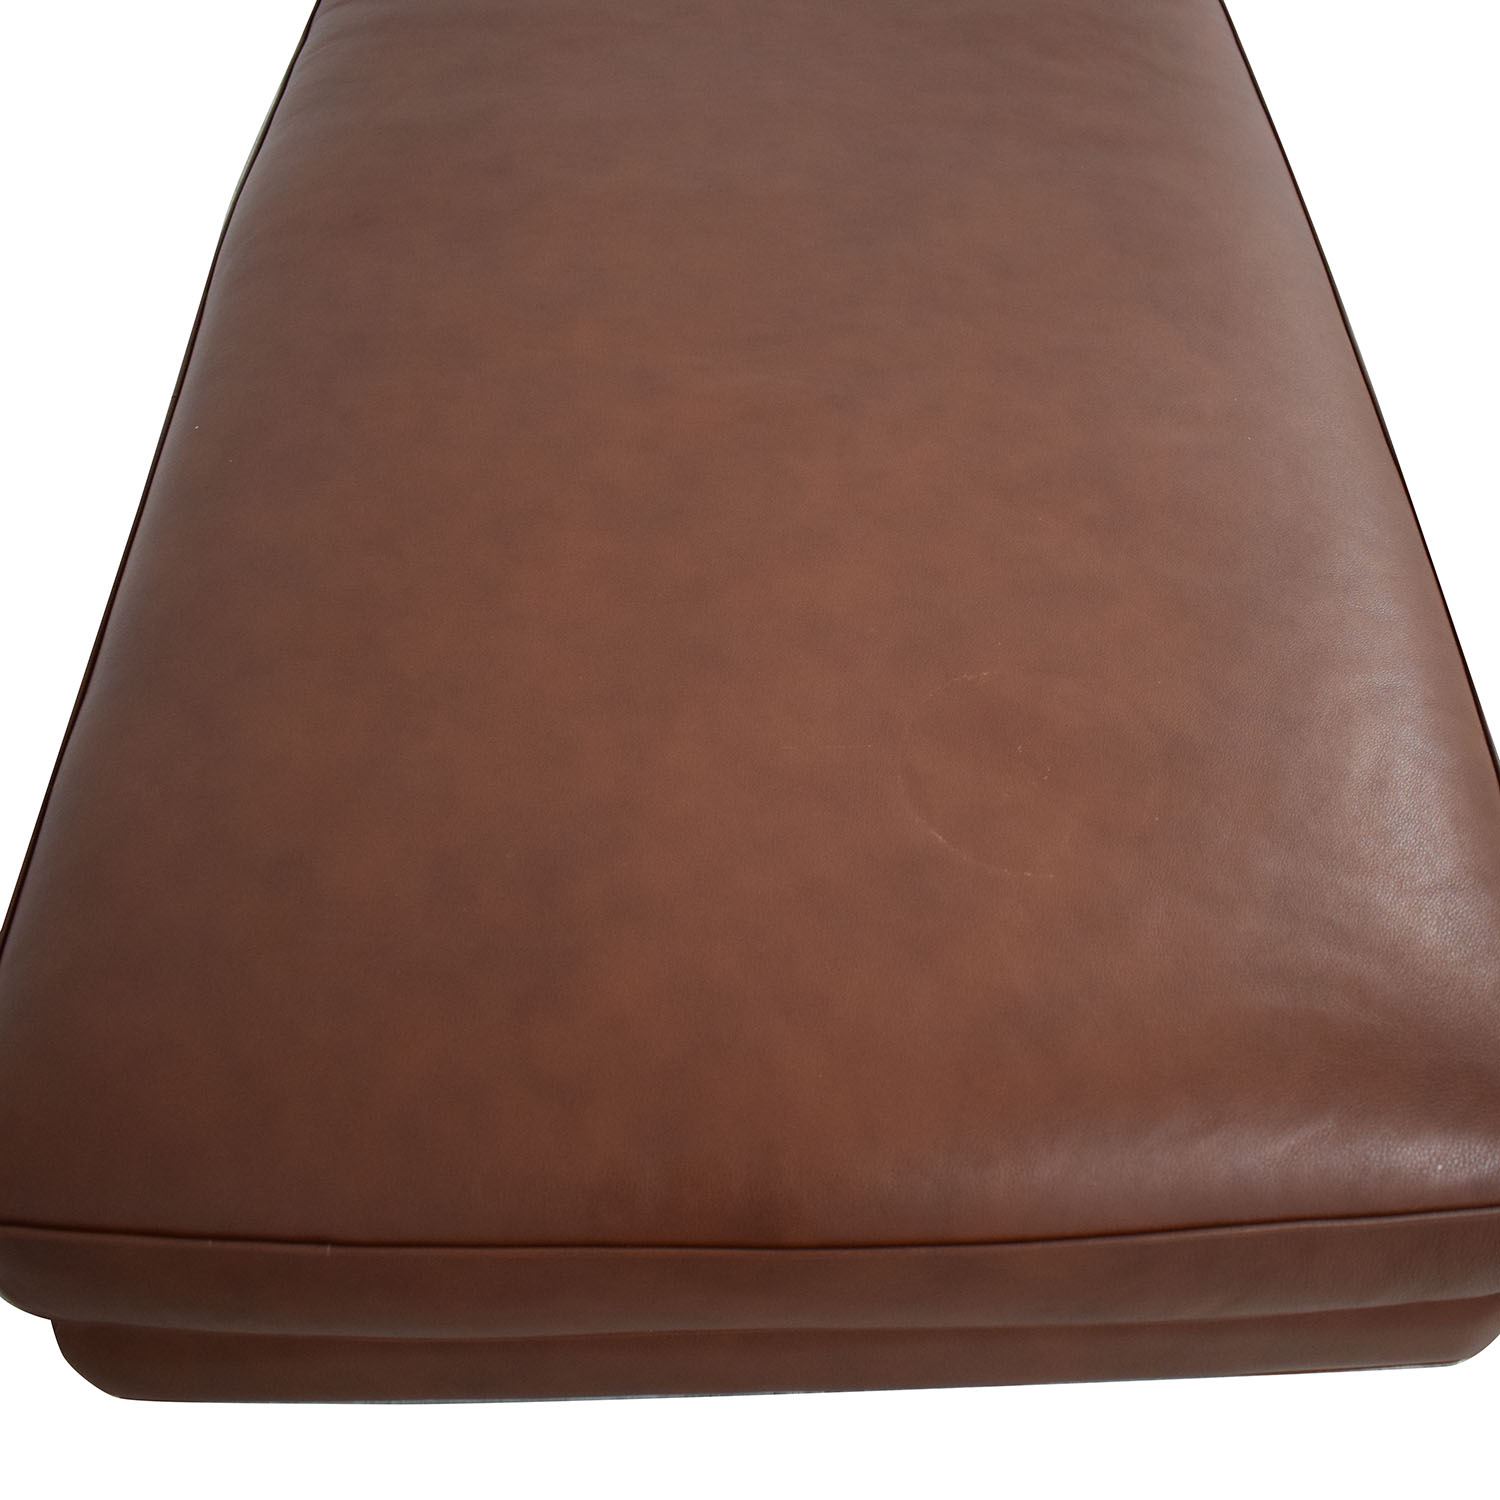 buy Design Within Reach Design Within Reach Theatre Ottoman Leather Ottoman online